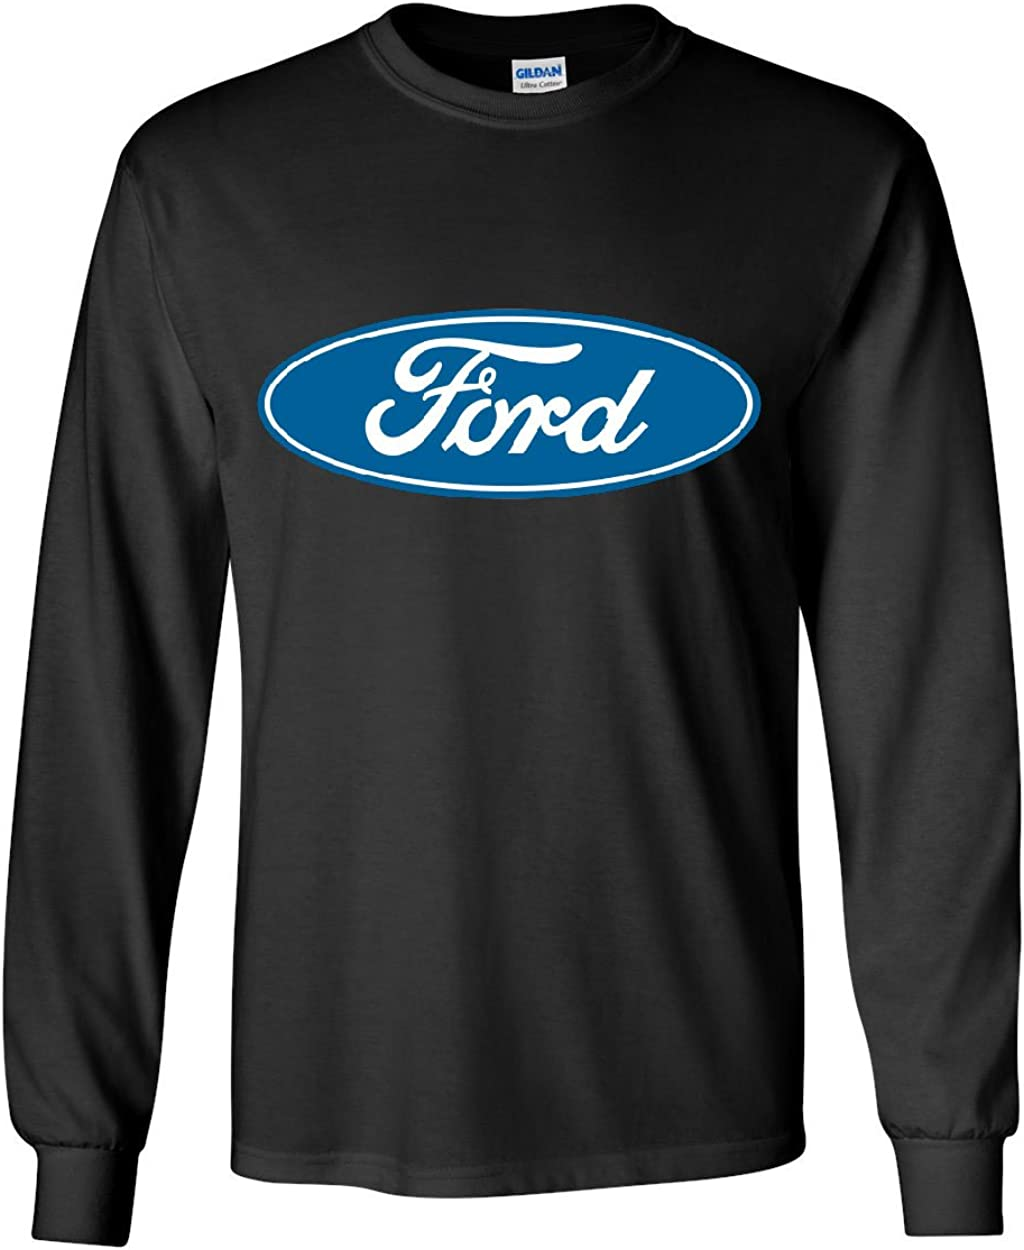 S-5XL FORD Logo T-Shirt CLASSIC Mustang F-150 Truck Car Automotive Tee New